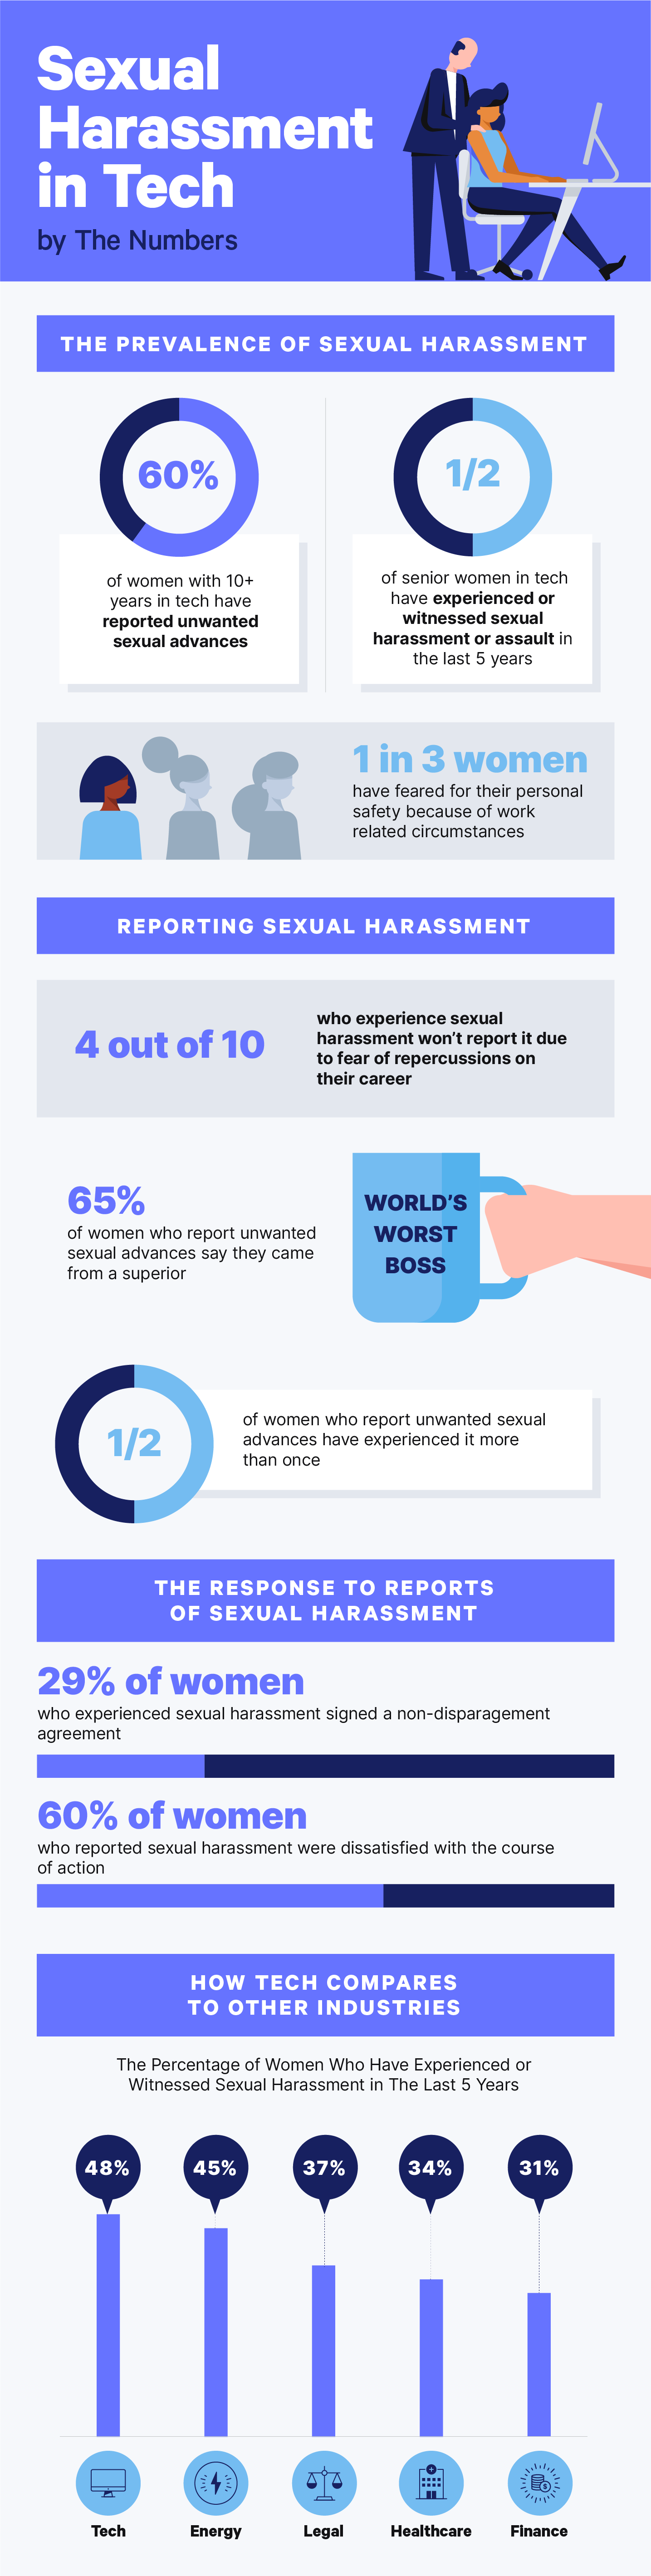 sexual harassment in tech - by the numbers